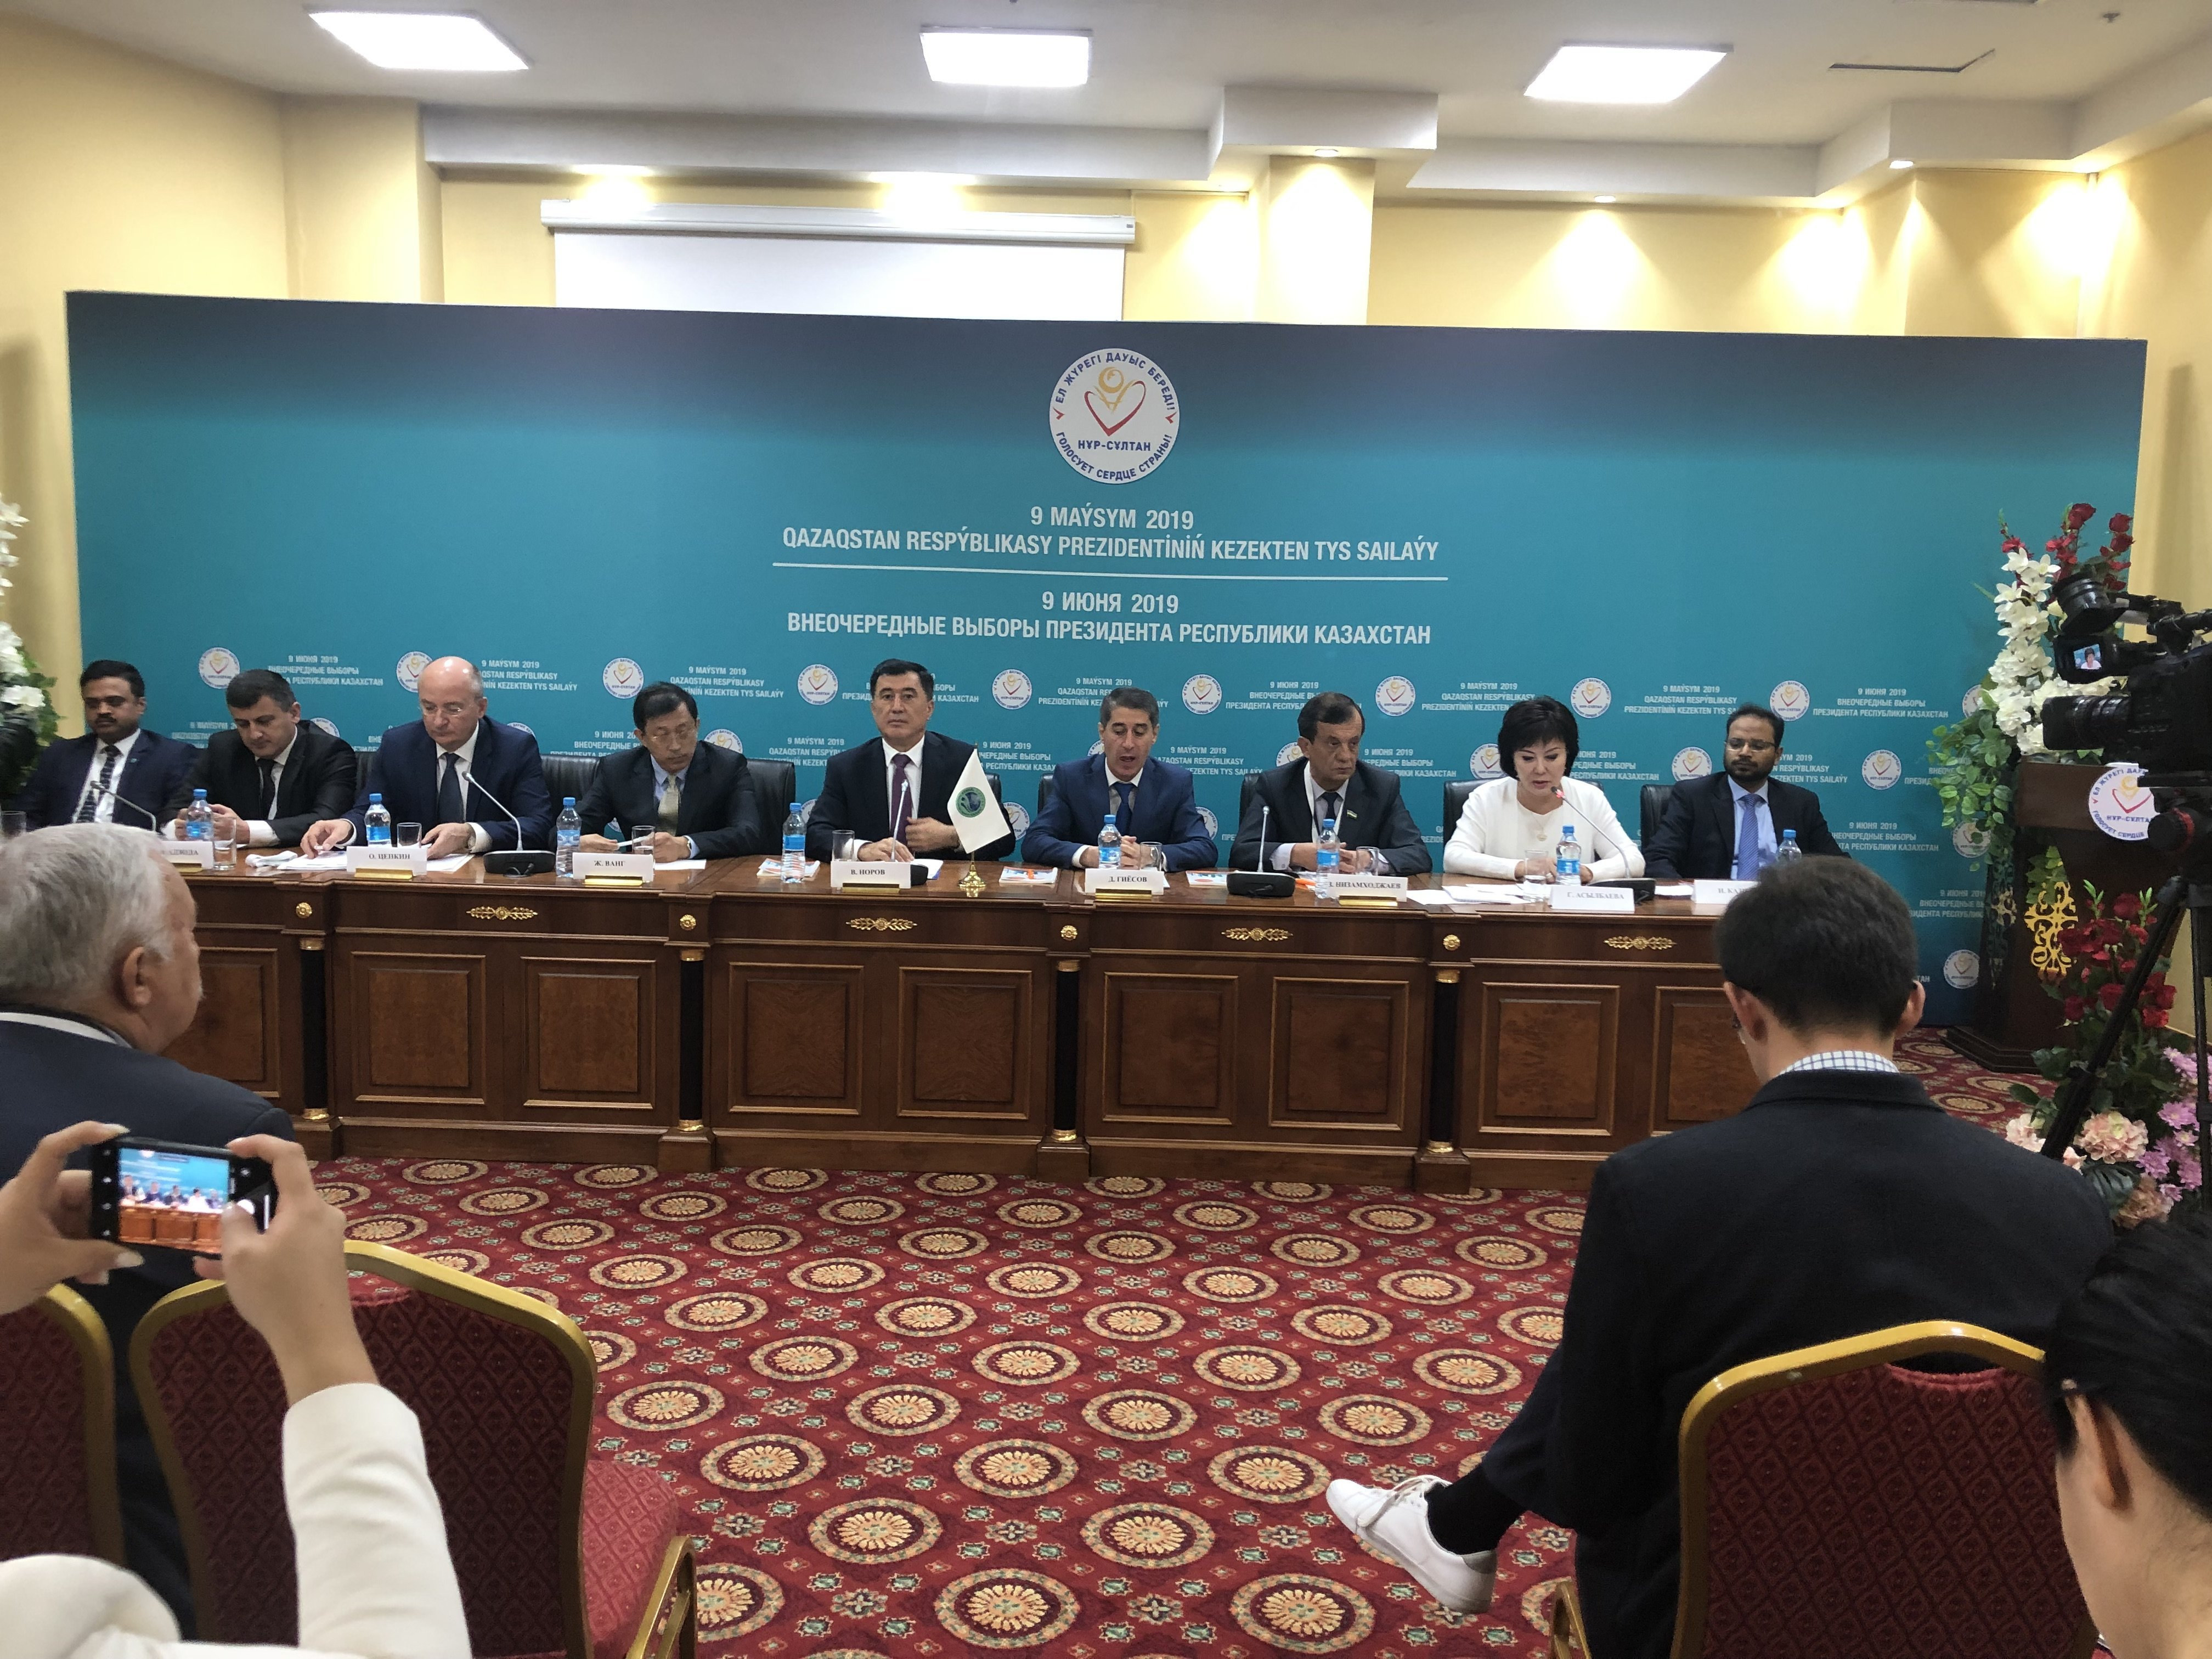 STATEMENT of the Observers Mission of the Shanghai Cooperation Organization regarding preparation and holding of the early presidential elections of the Republic of Kazakhstan